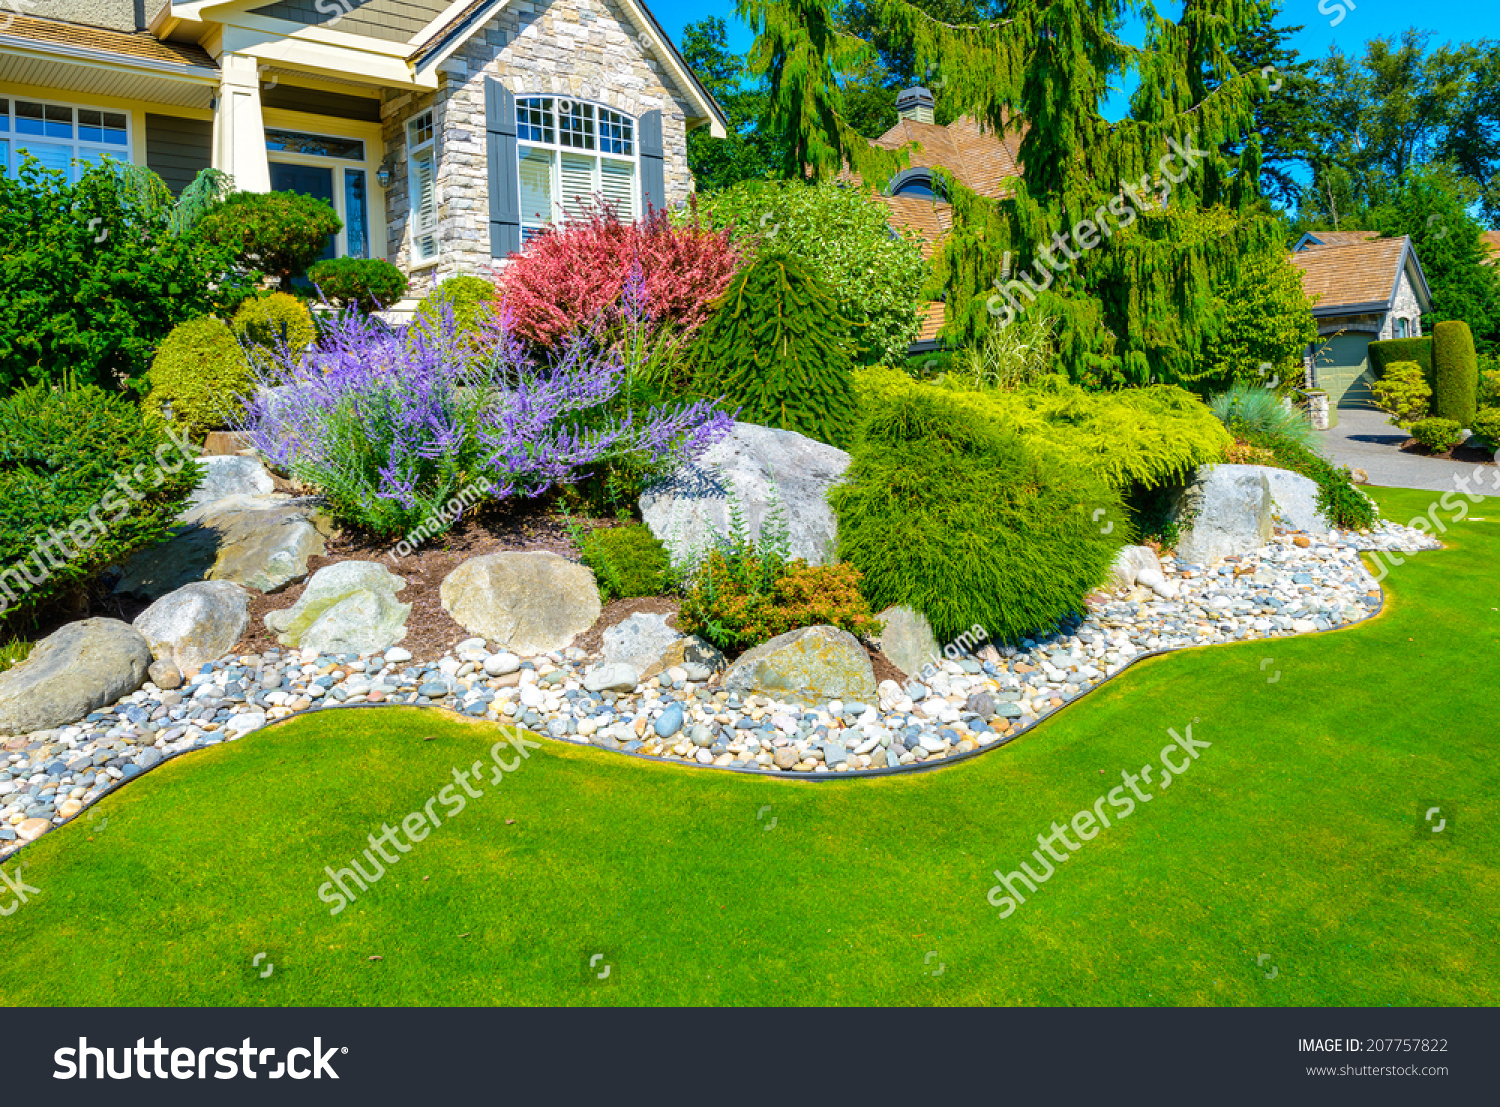 Flowers stones front house front yard stock photo for House and landscape design